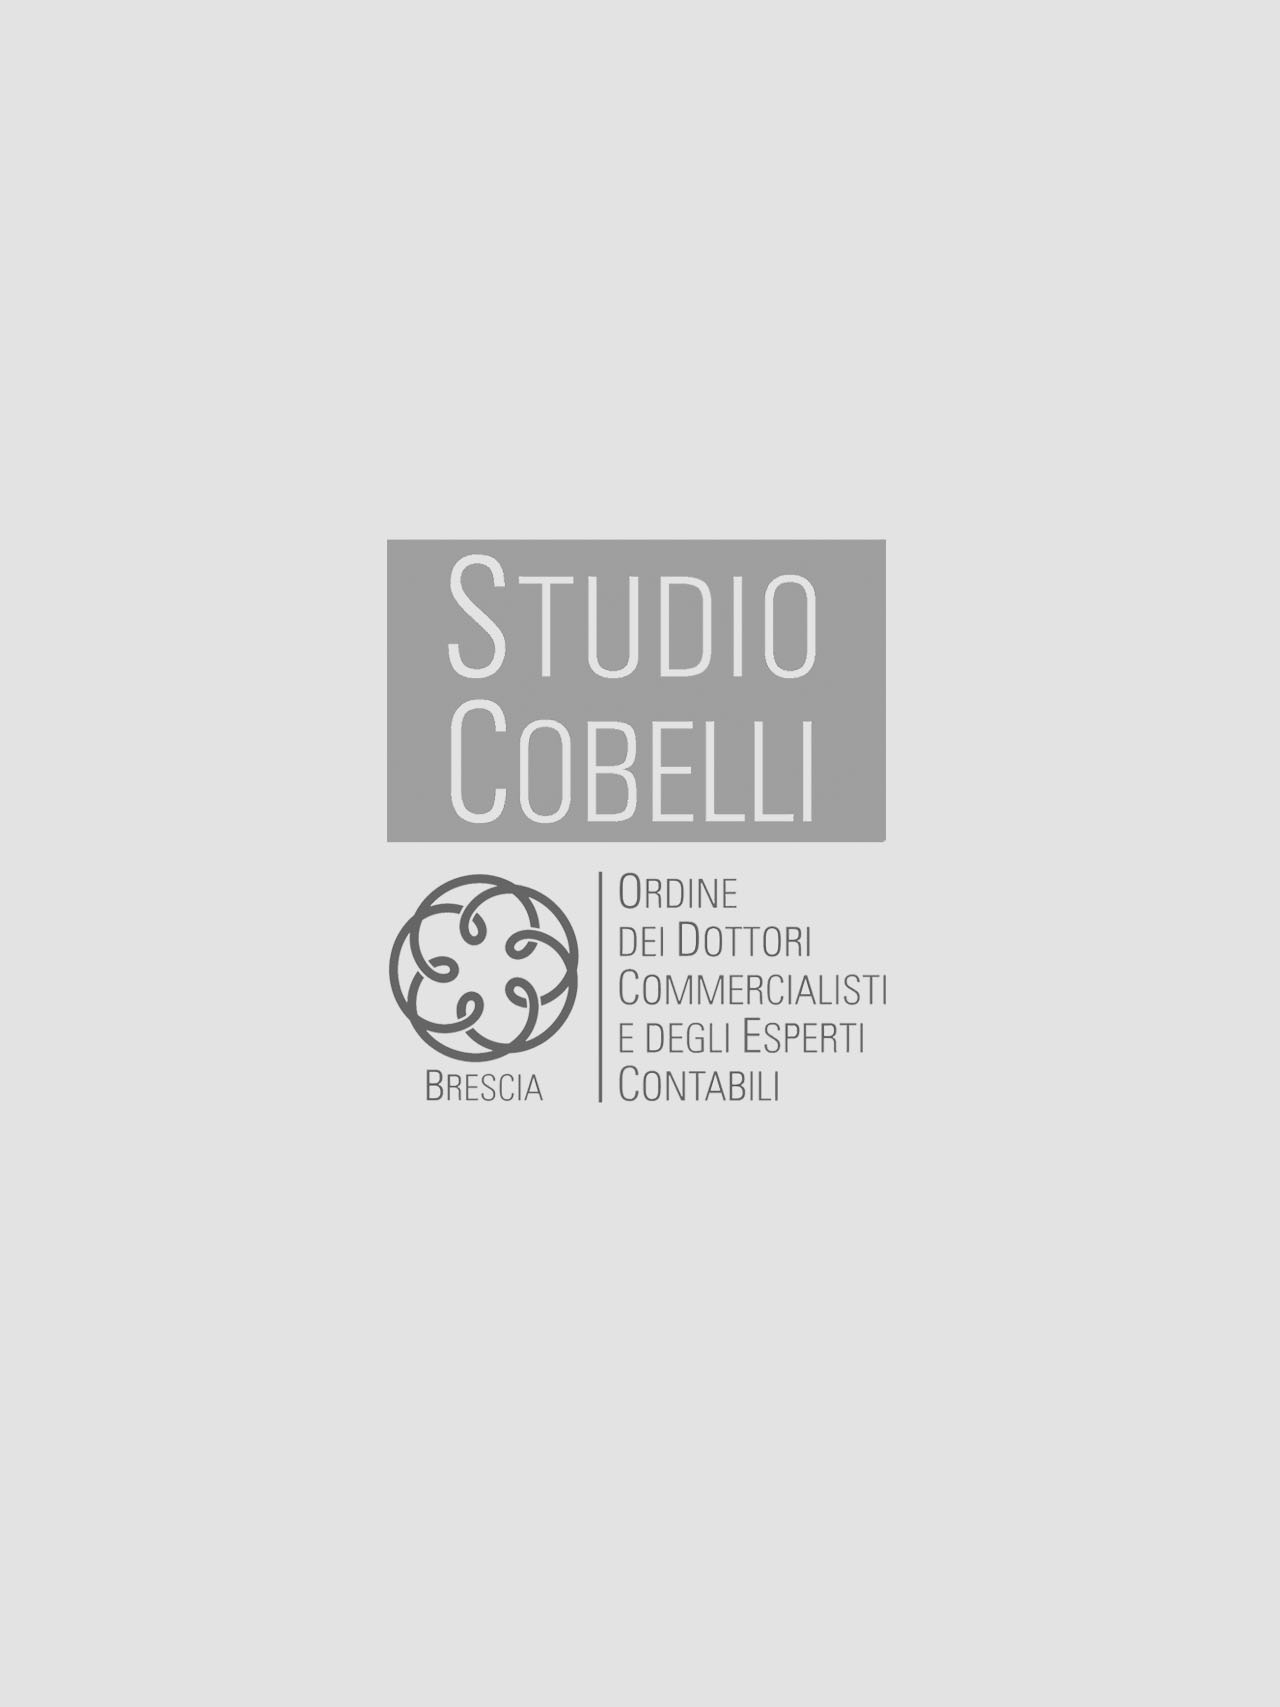 siti-internet-seo-newsletter-social-network-studio-cobelli-contessifostinelli